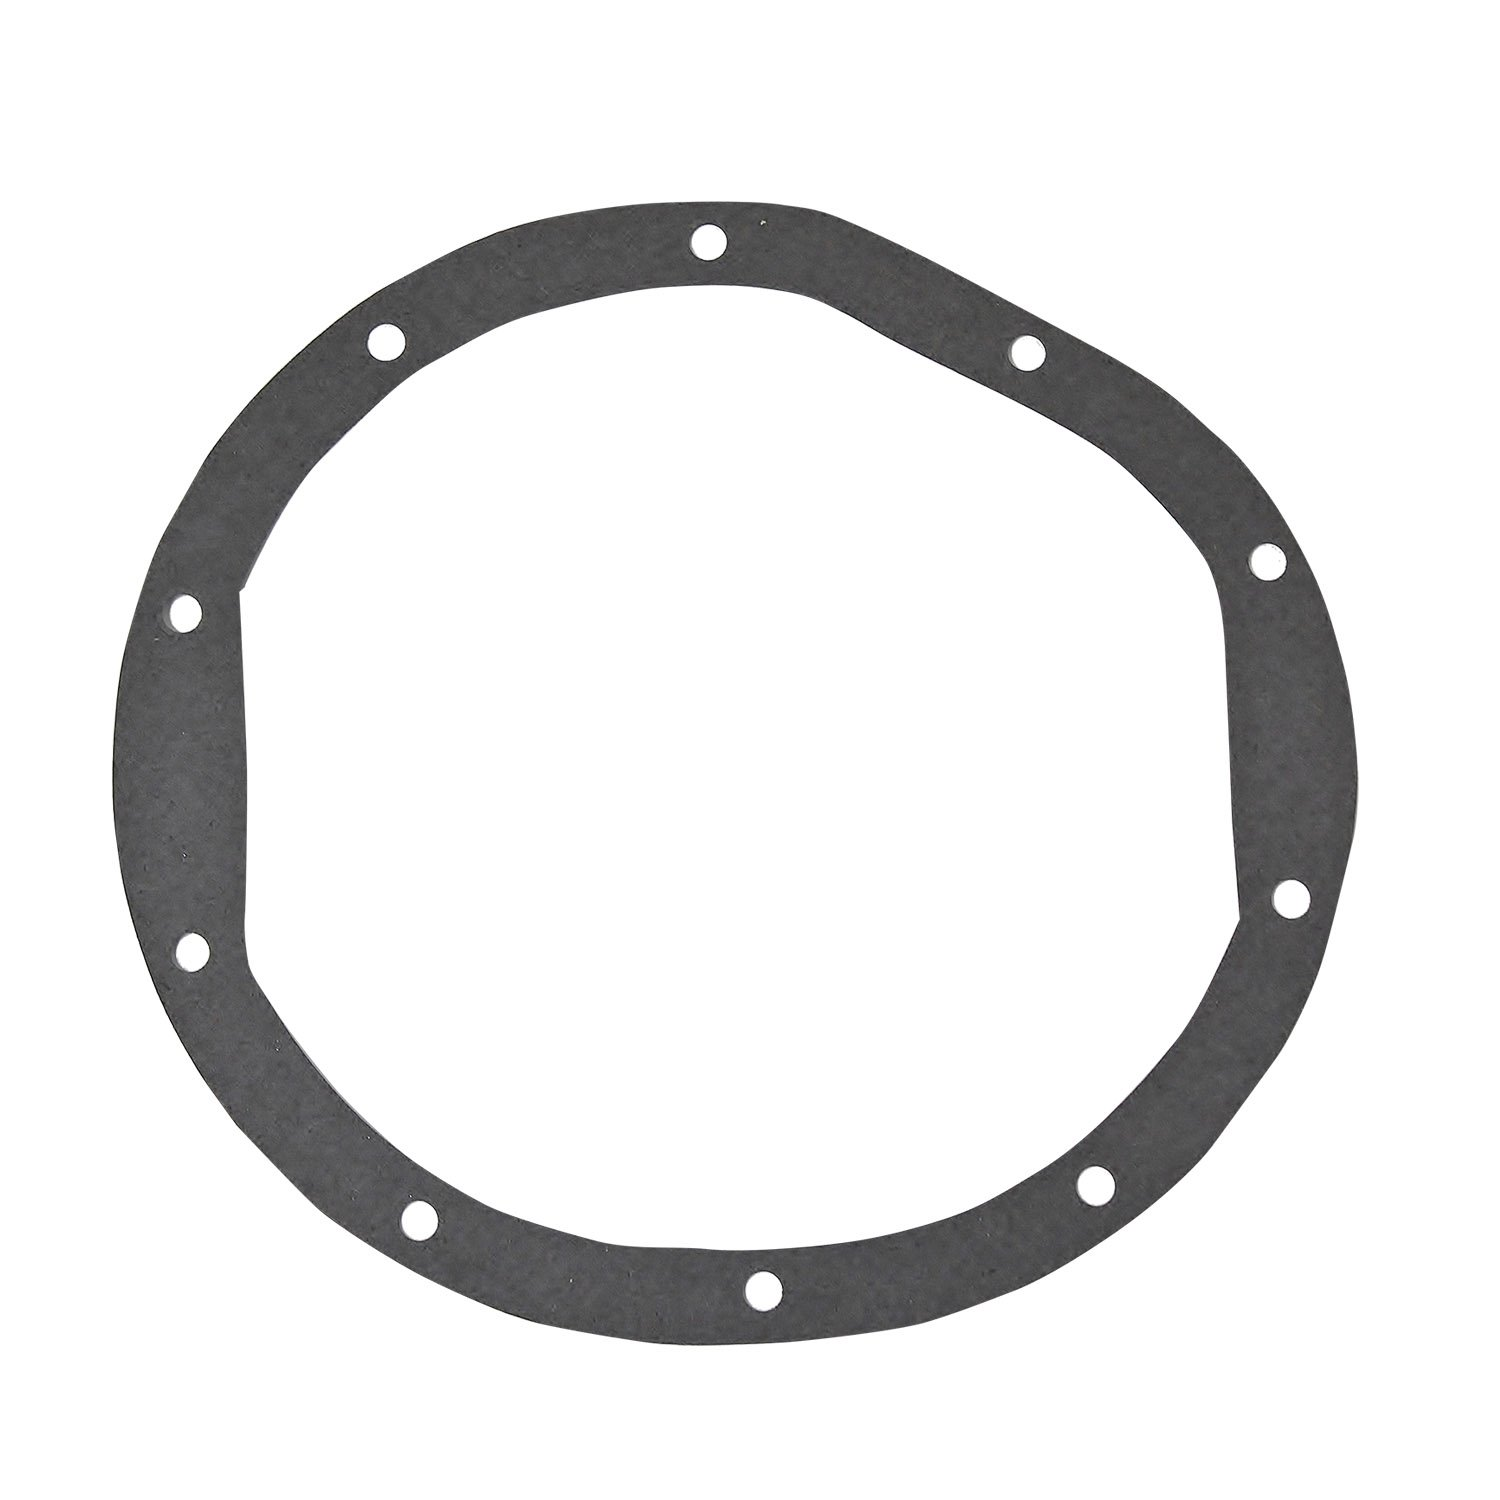 Mota Performance A96956 10 Bolt Differential Cover Gasket for GM Truck